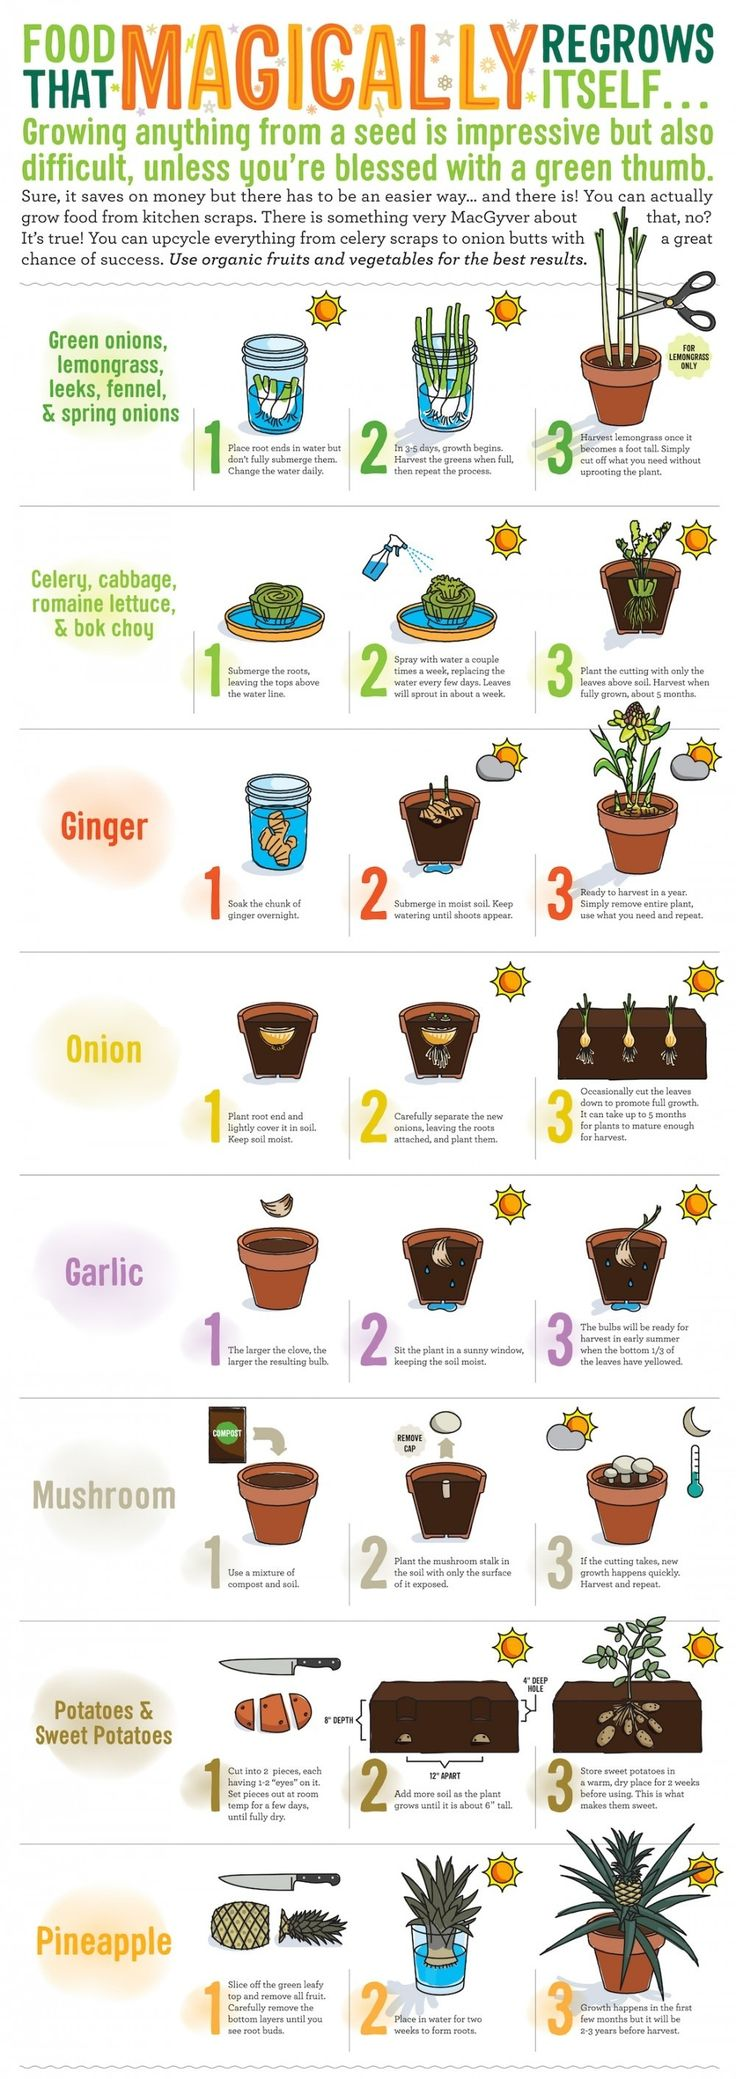 Kitchen Gardeners 17 Best Ideas About Biodynamic Gardening On Pinterest